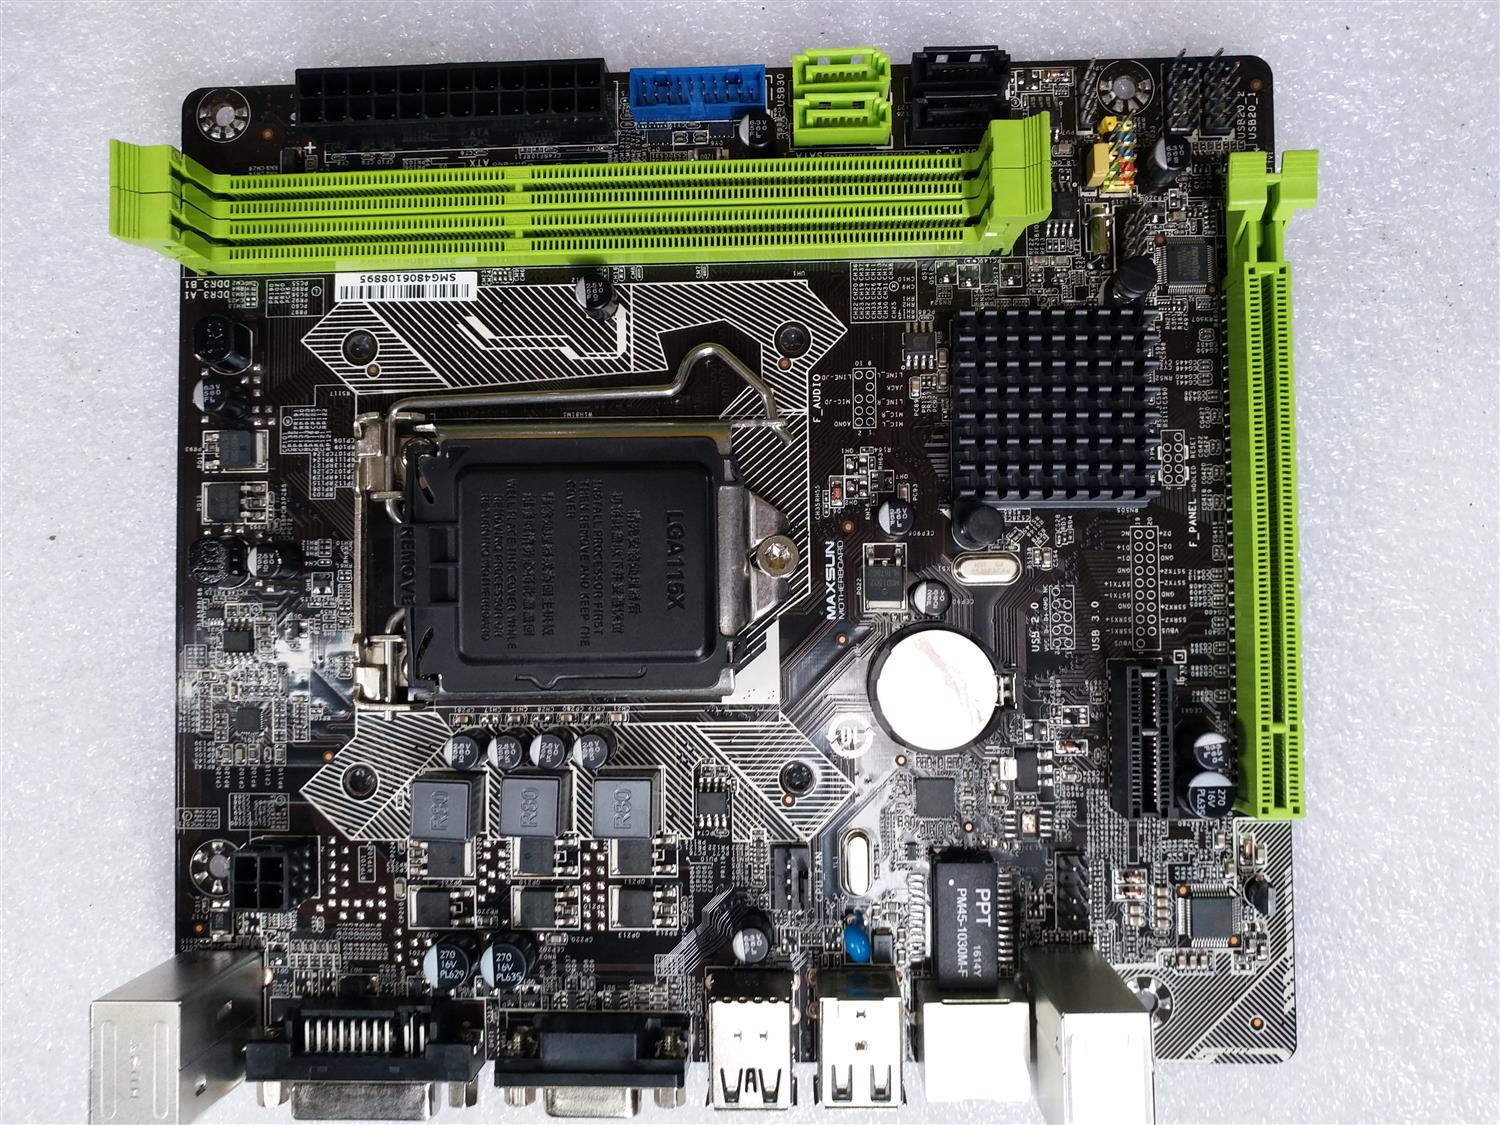 Used, for MAXSUN MS-H81M solid-state 19 * 17 H81M motherboard VGA + DVI G3250,100% tested good